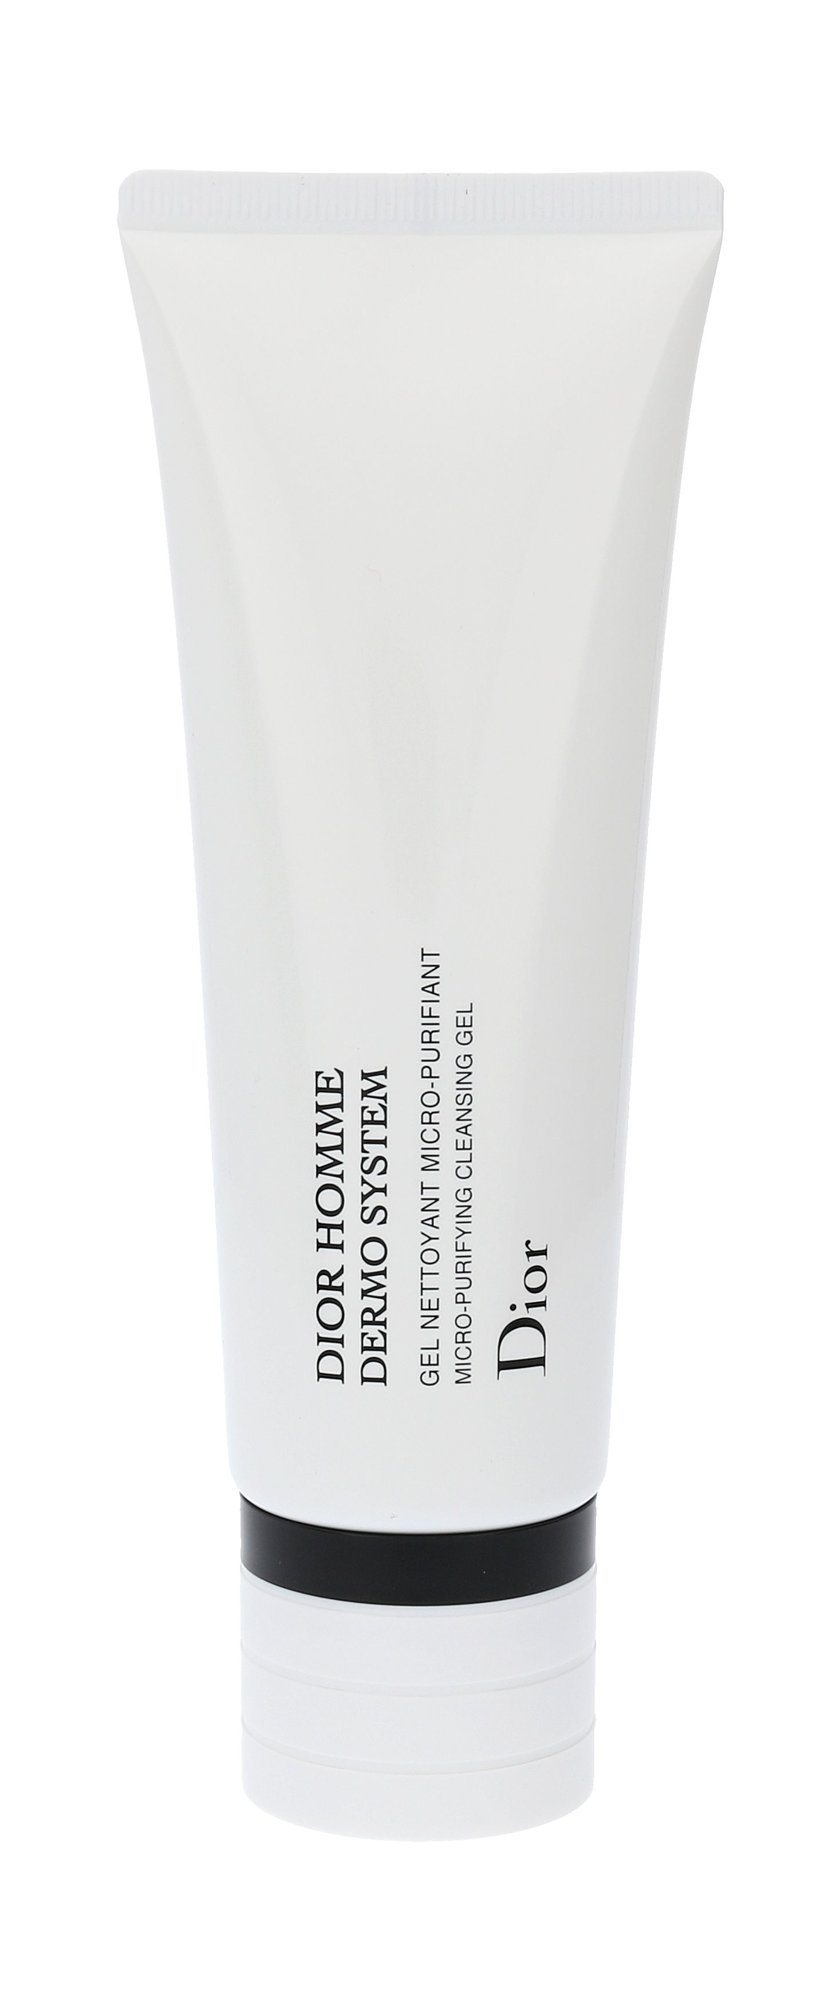 Christian Dior Homme Dermo System Cosmetic 125ml